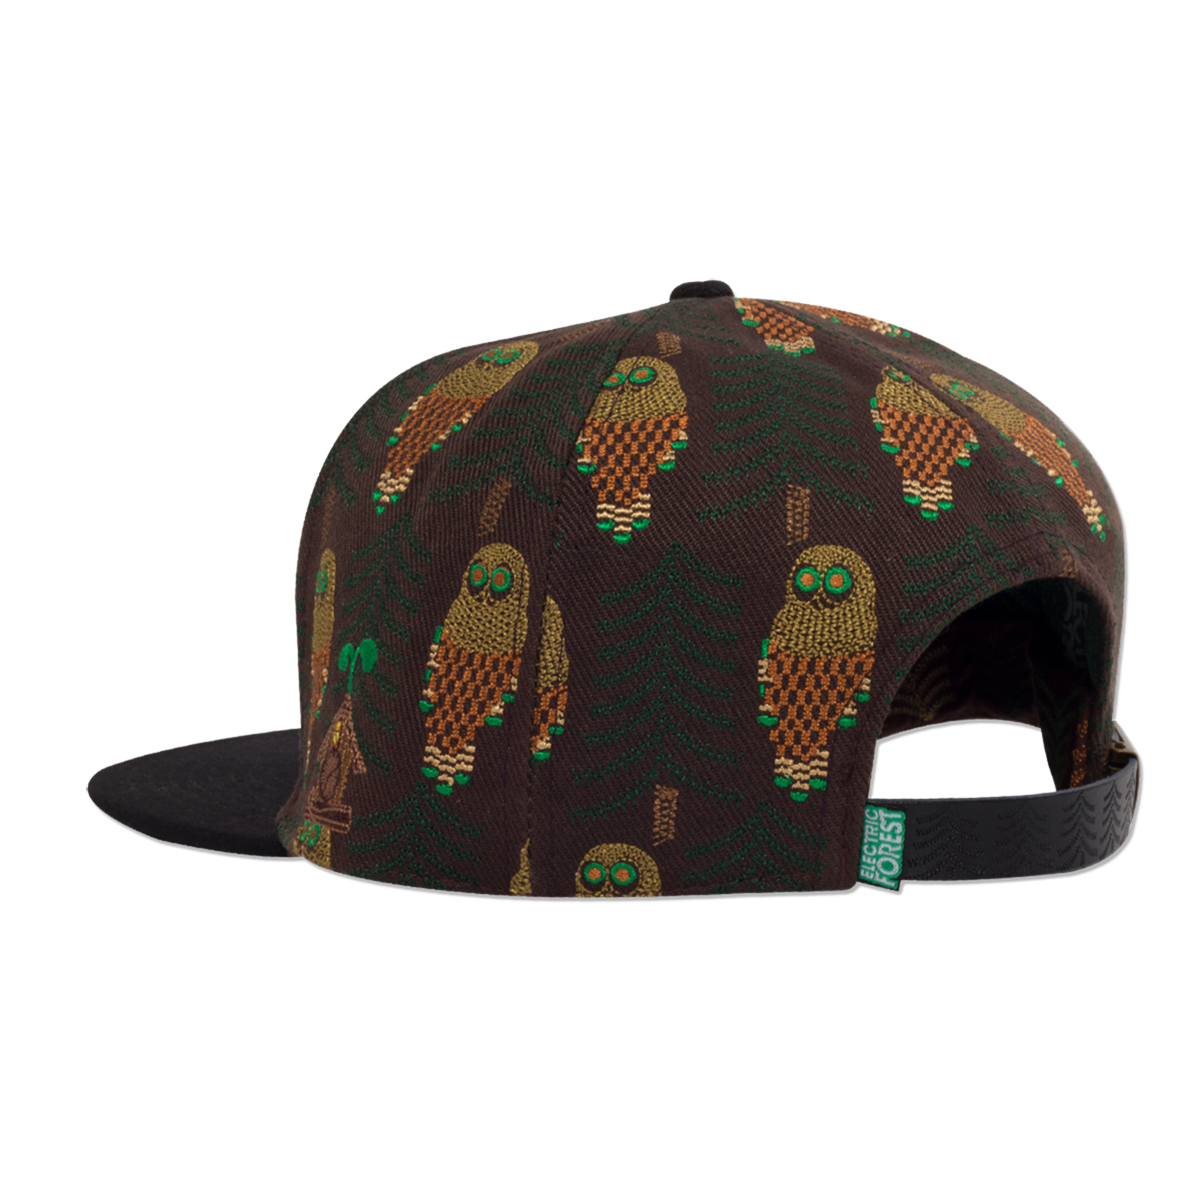 Official 2017 Grassroots California custom flat brim, snap back - OWL